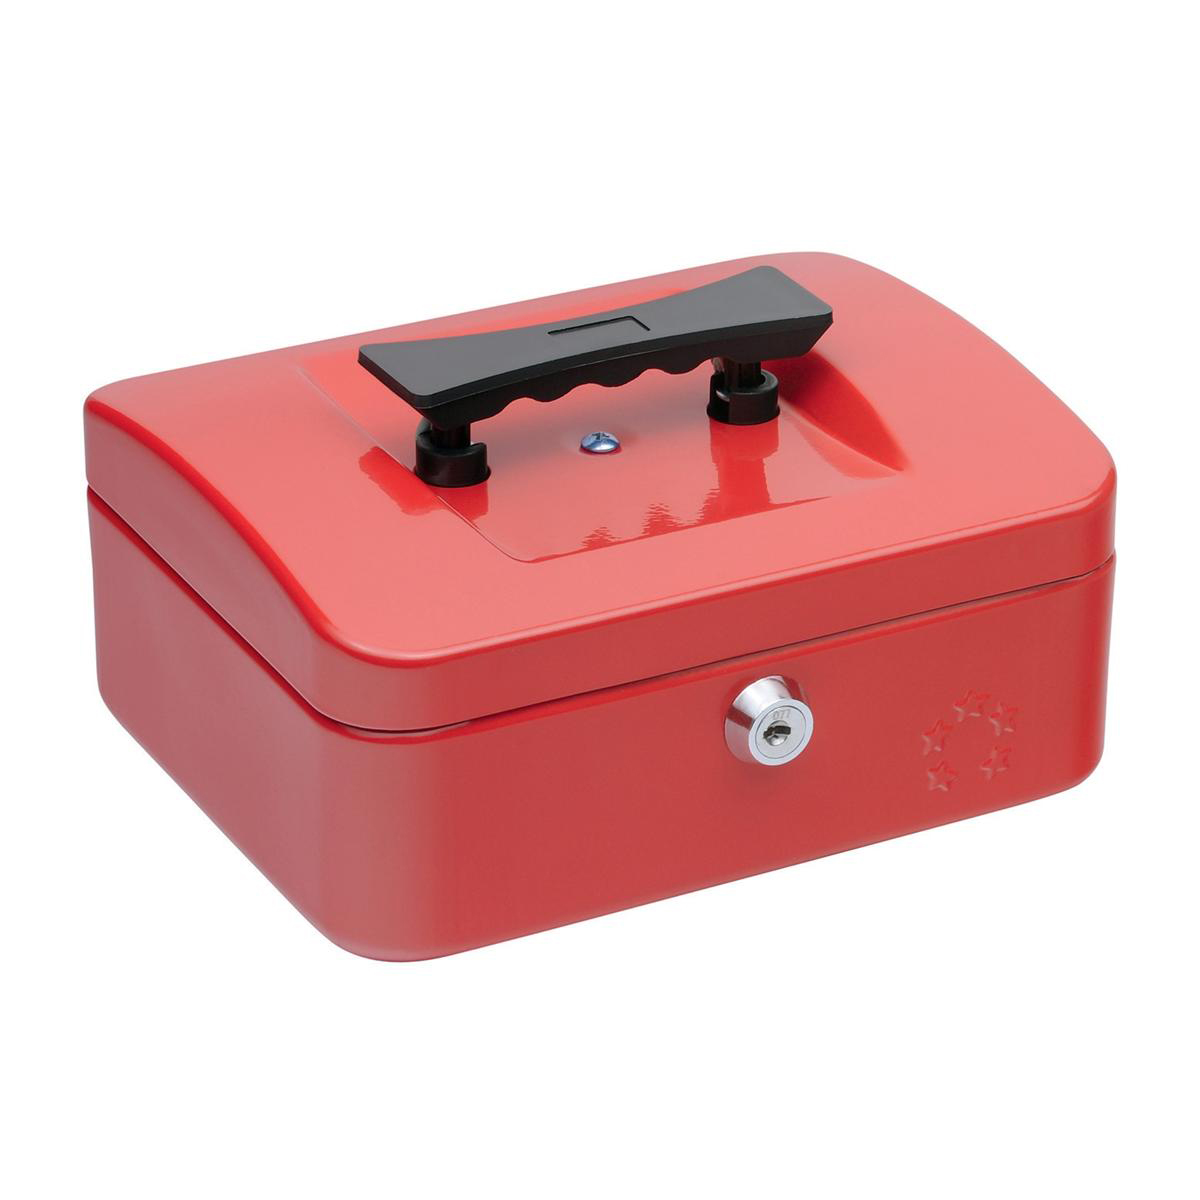 Cash 5 Star Facilities Cash Box with 5-compartment Tray Steel Spring Lock 8 Inch W200xD160xH70mm Red